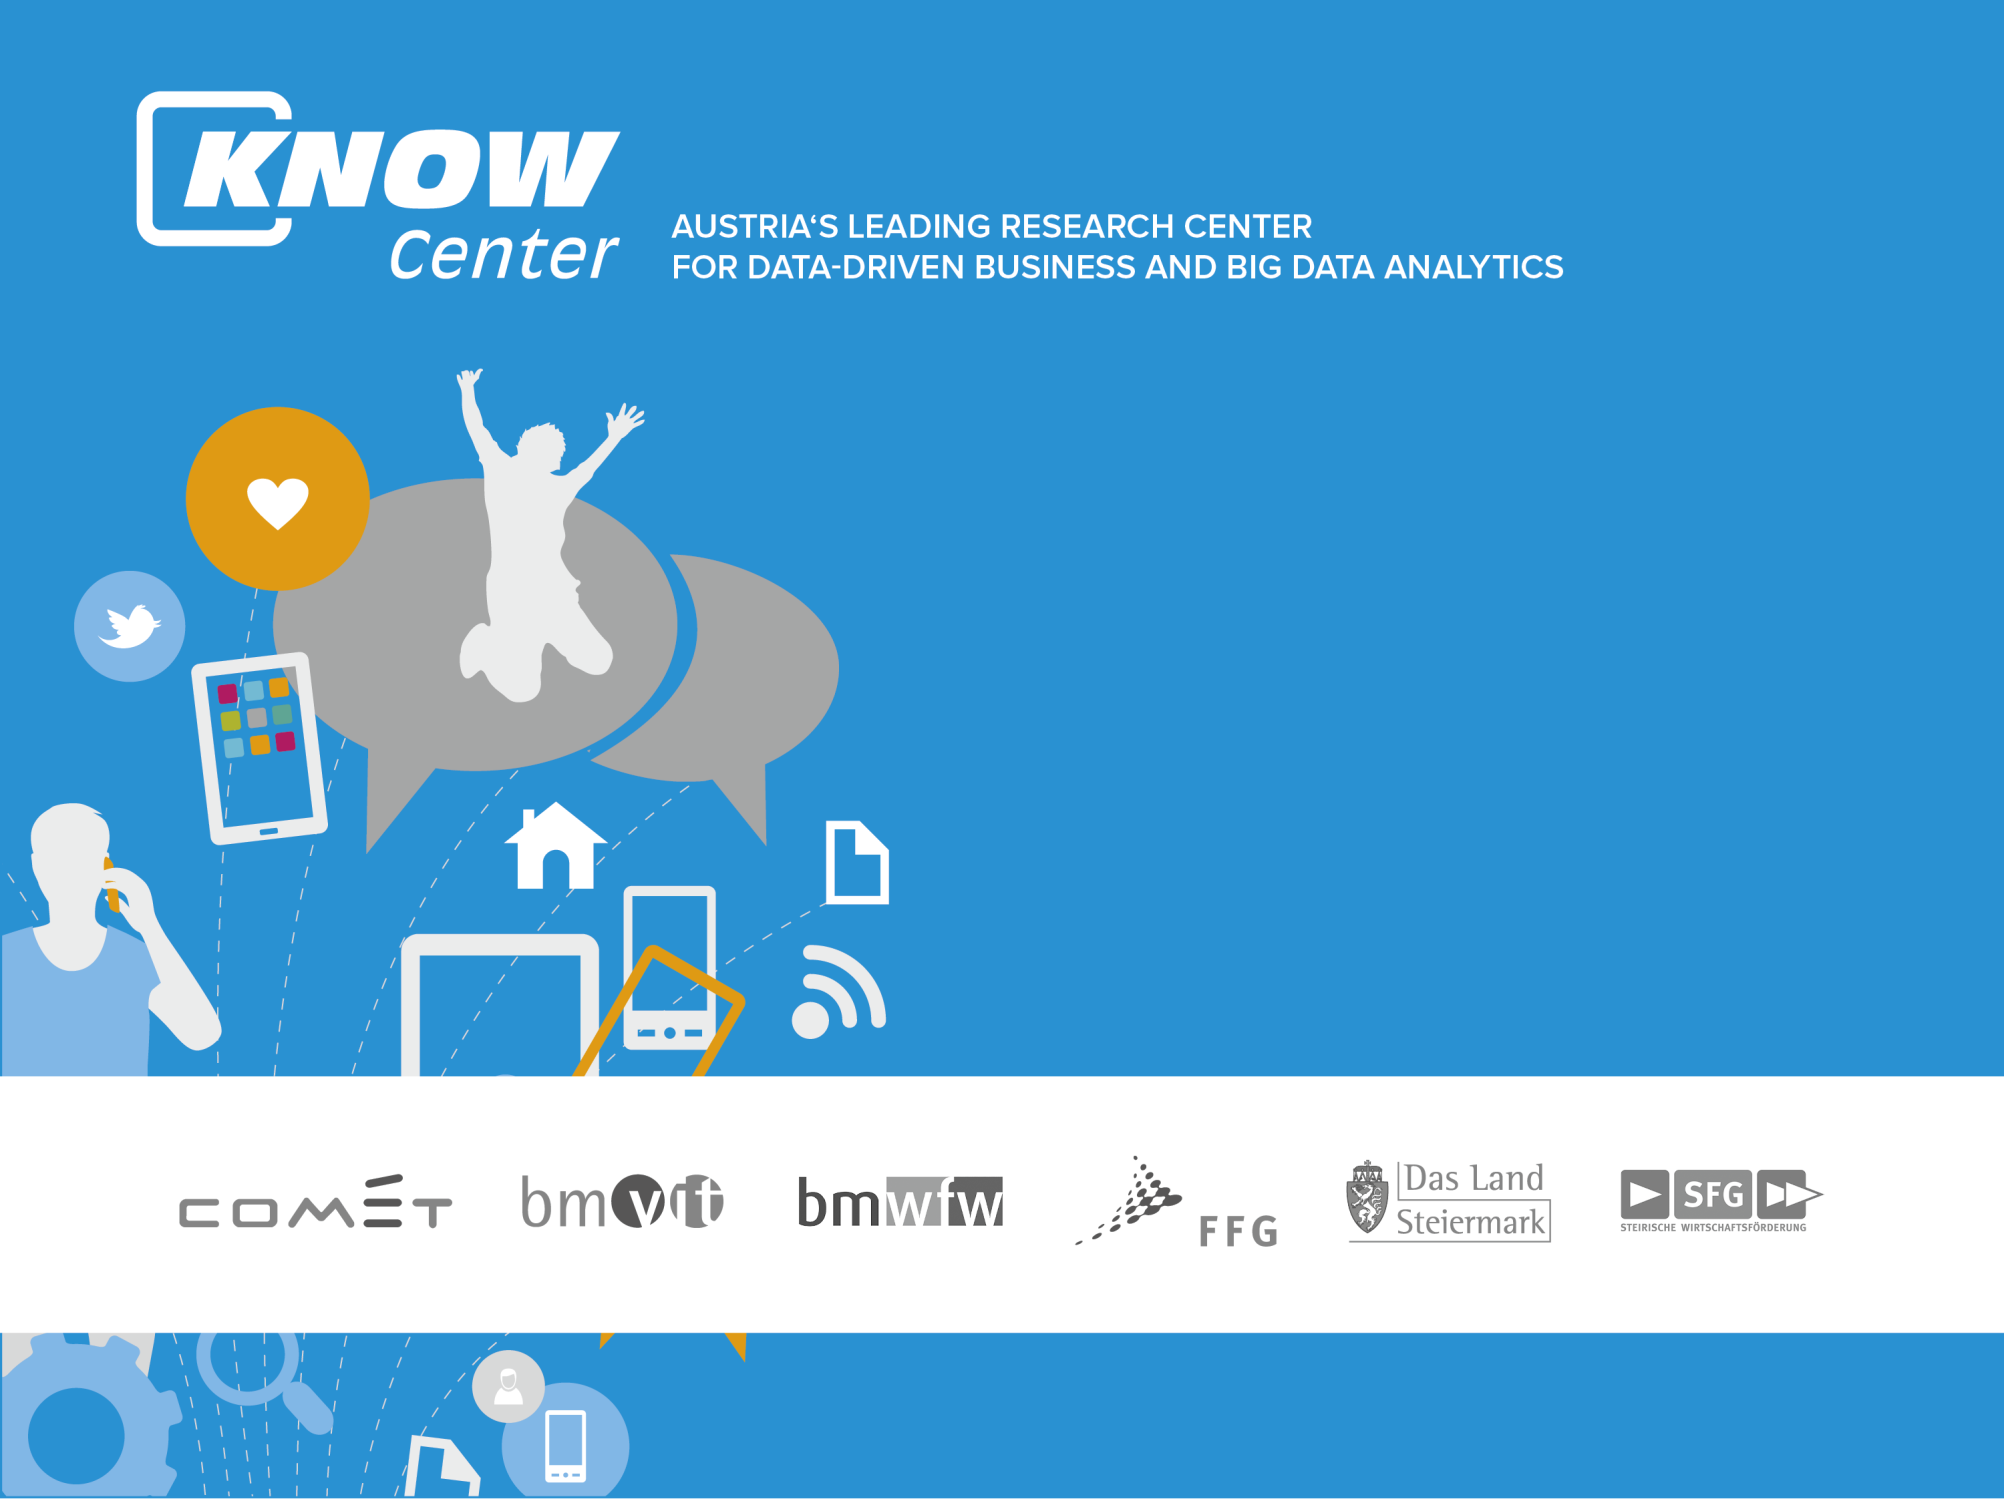 SAVE THE DATE: i-know 2015 vom 21. bis 23.